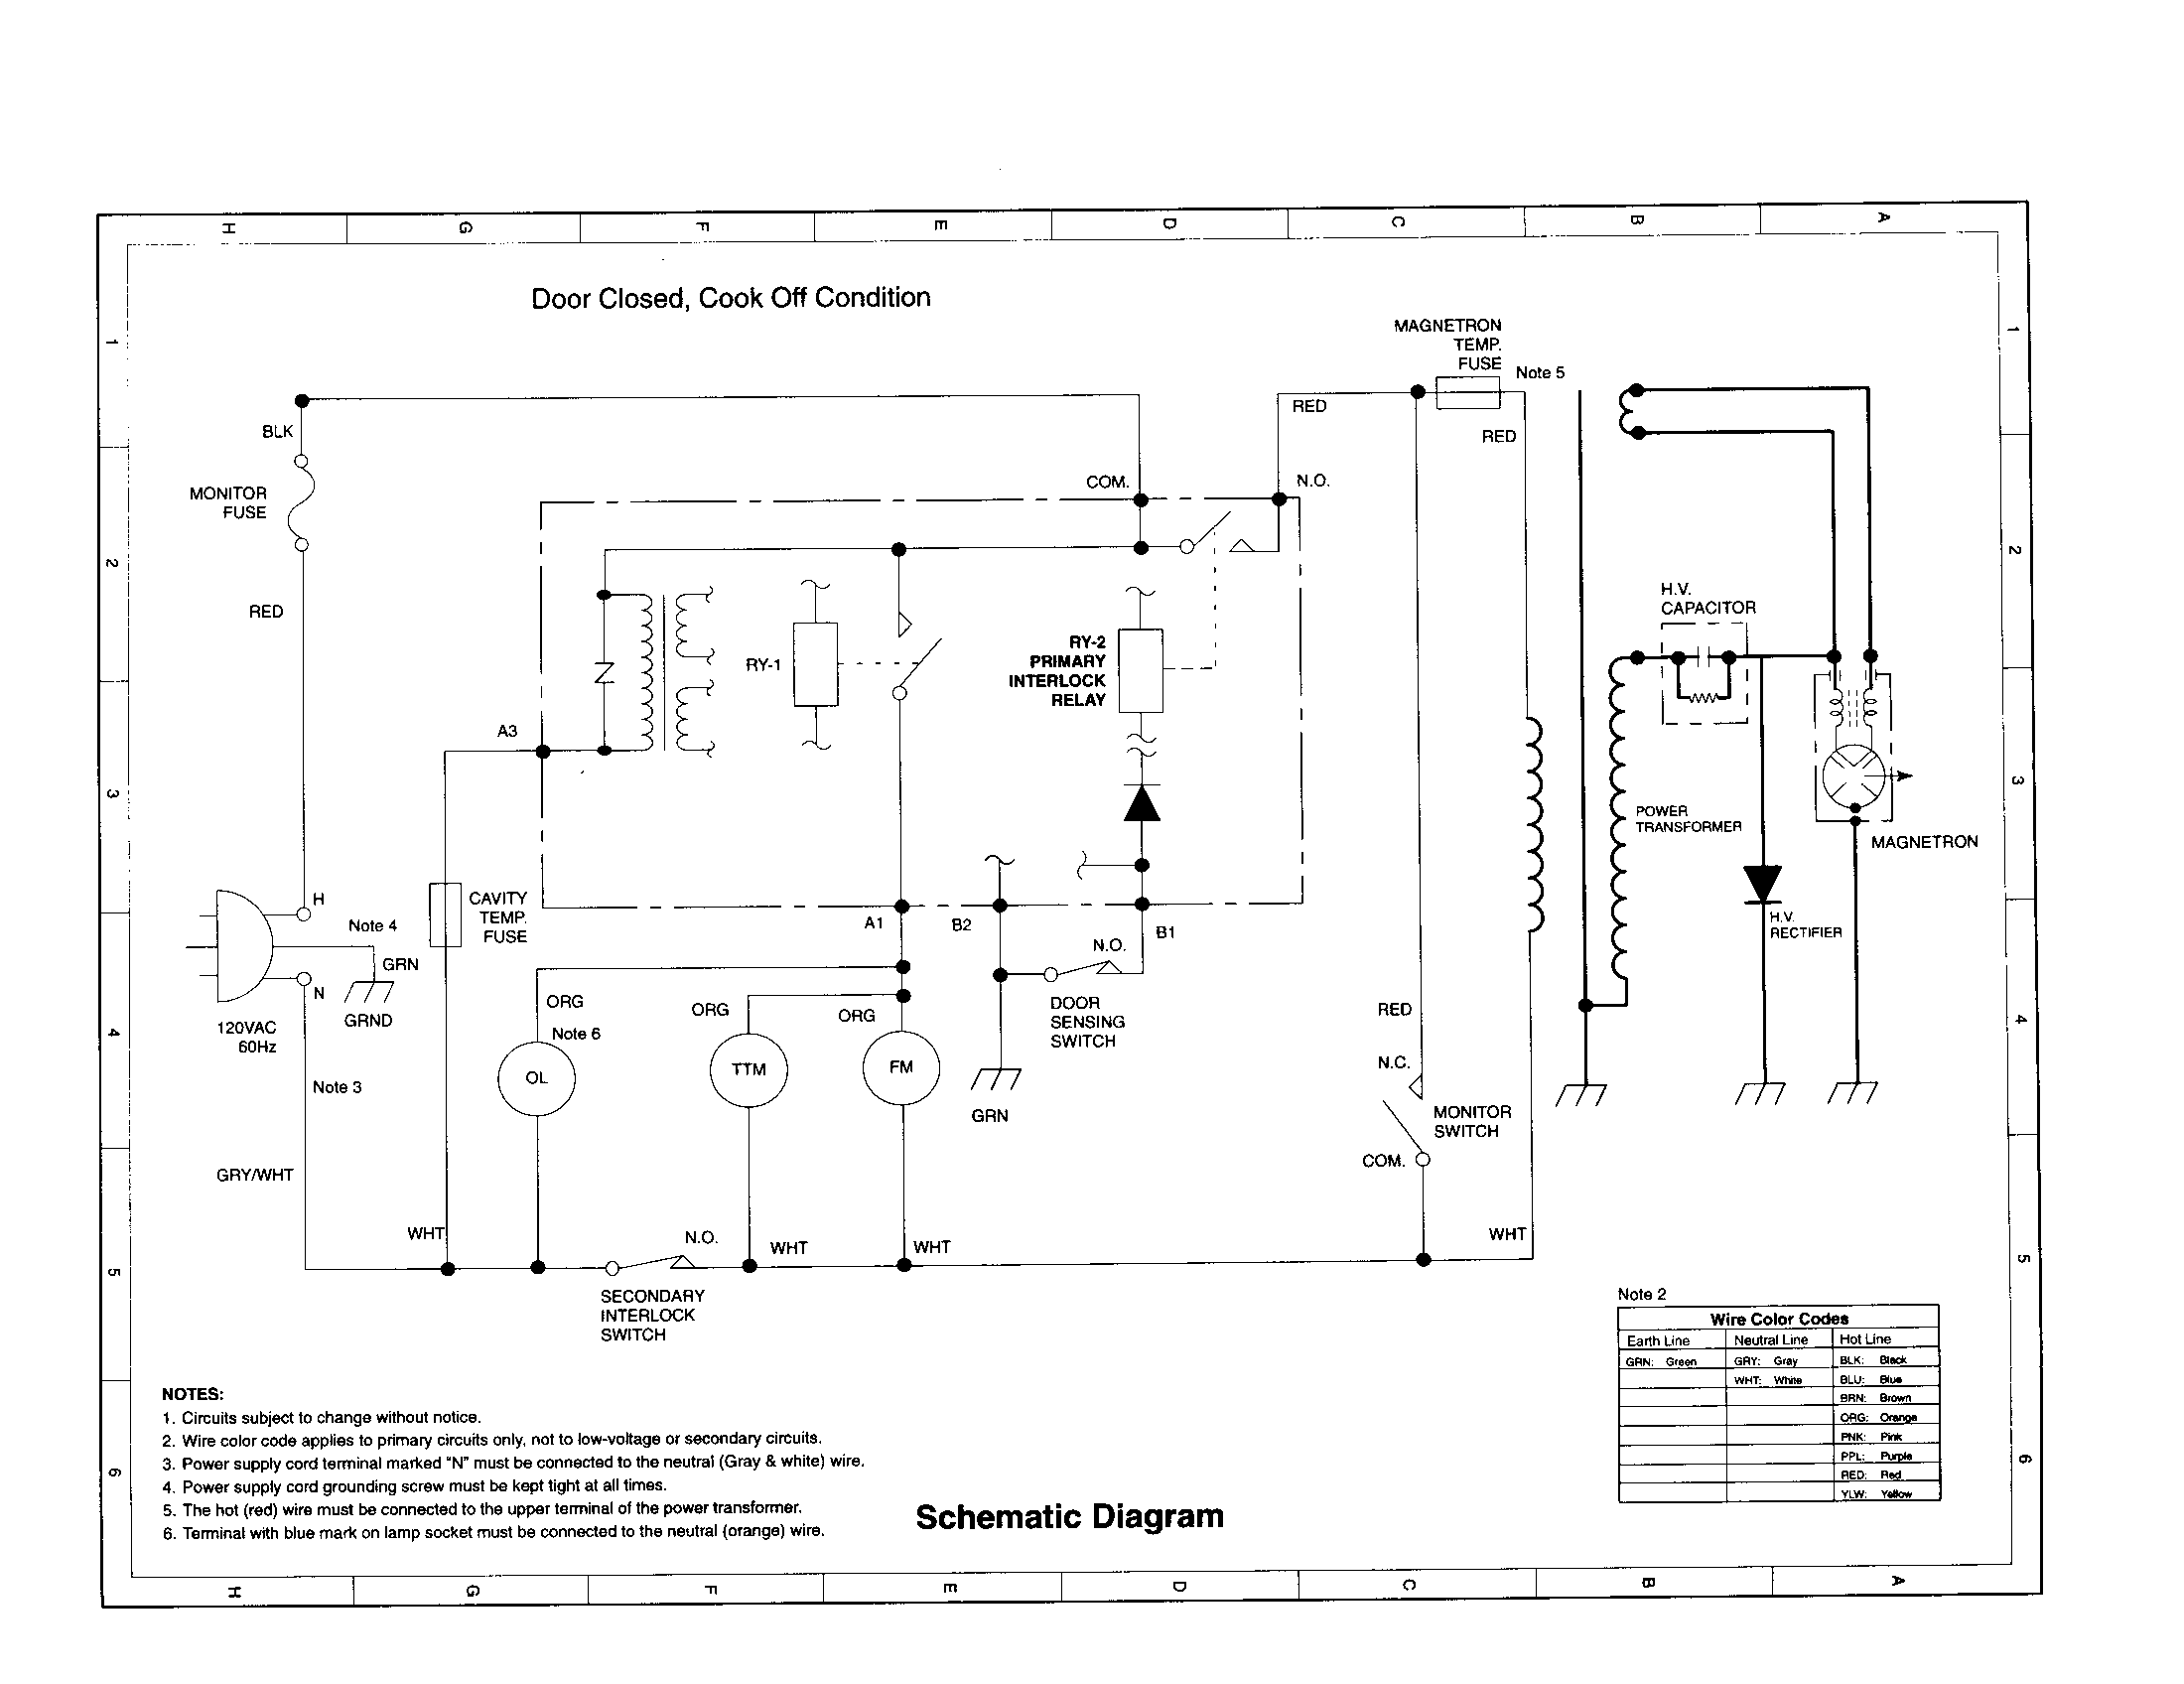 Schematic Diagrams Circuit Diagram With Switch